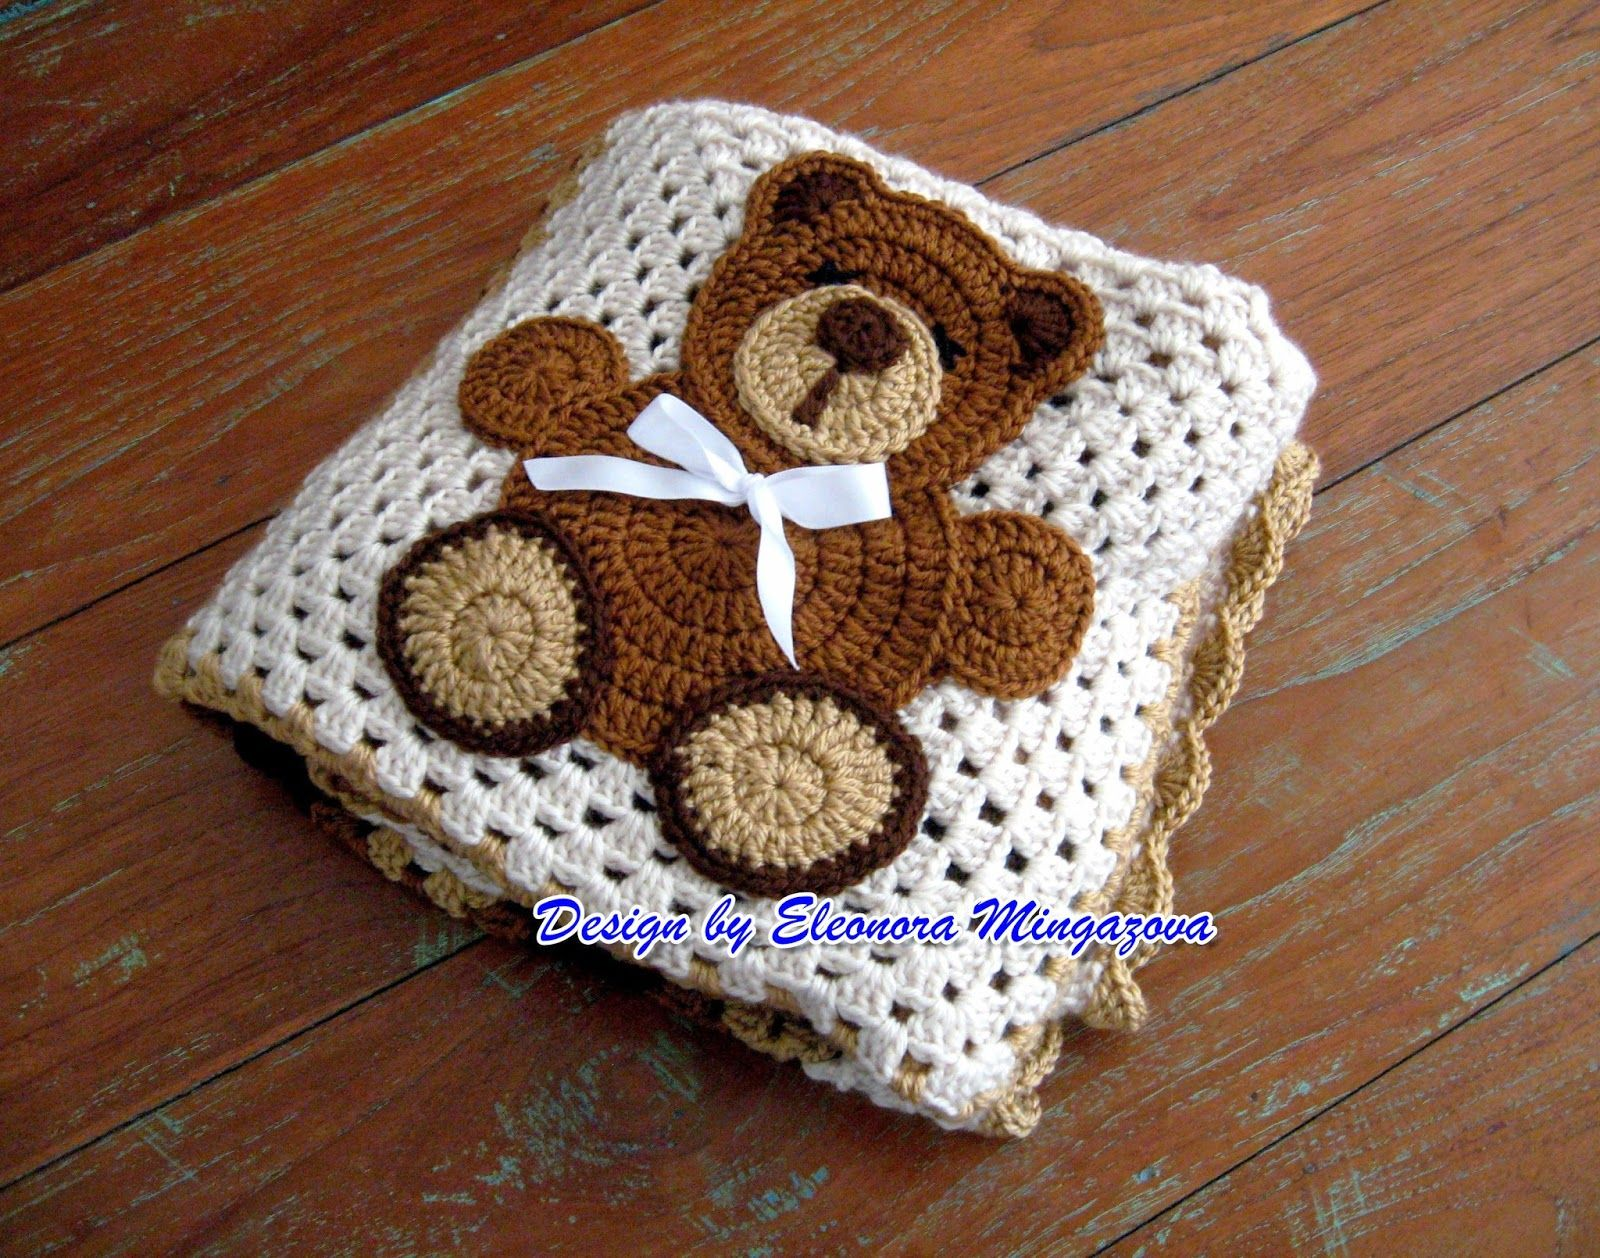 Teddy Bear Crochet Blanket | Pinterest | Bear blanket, Crochet teddy ...